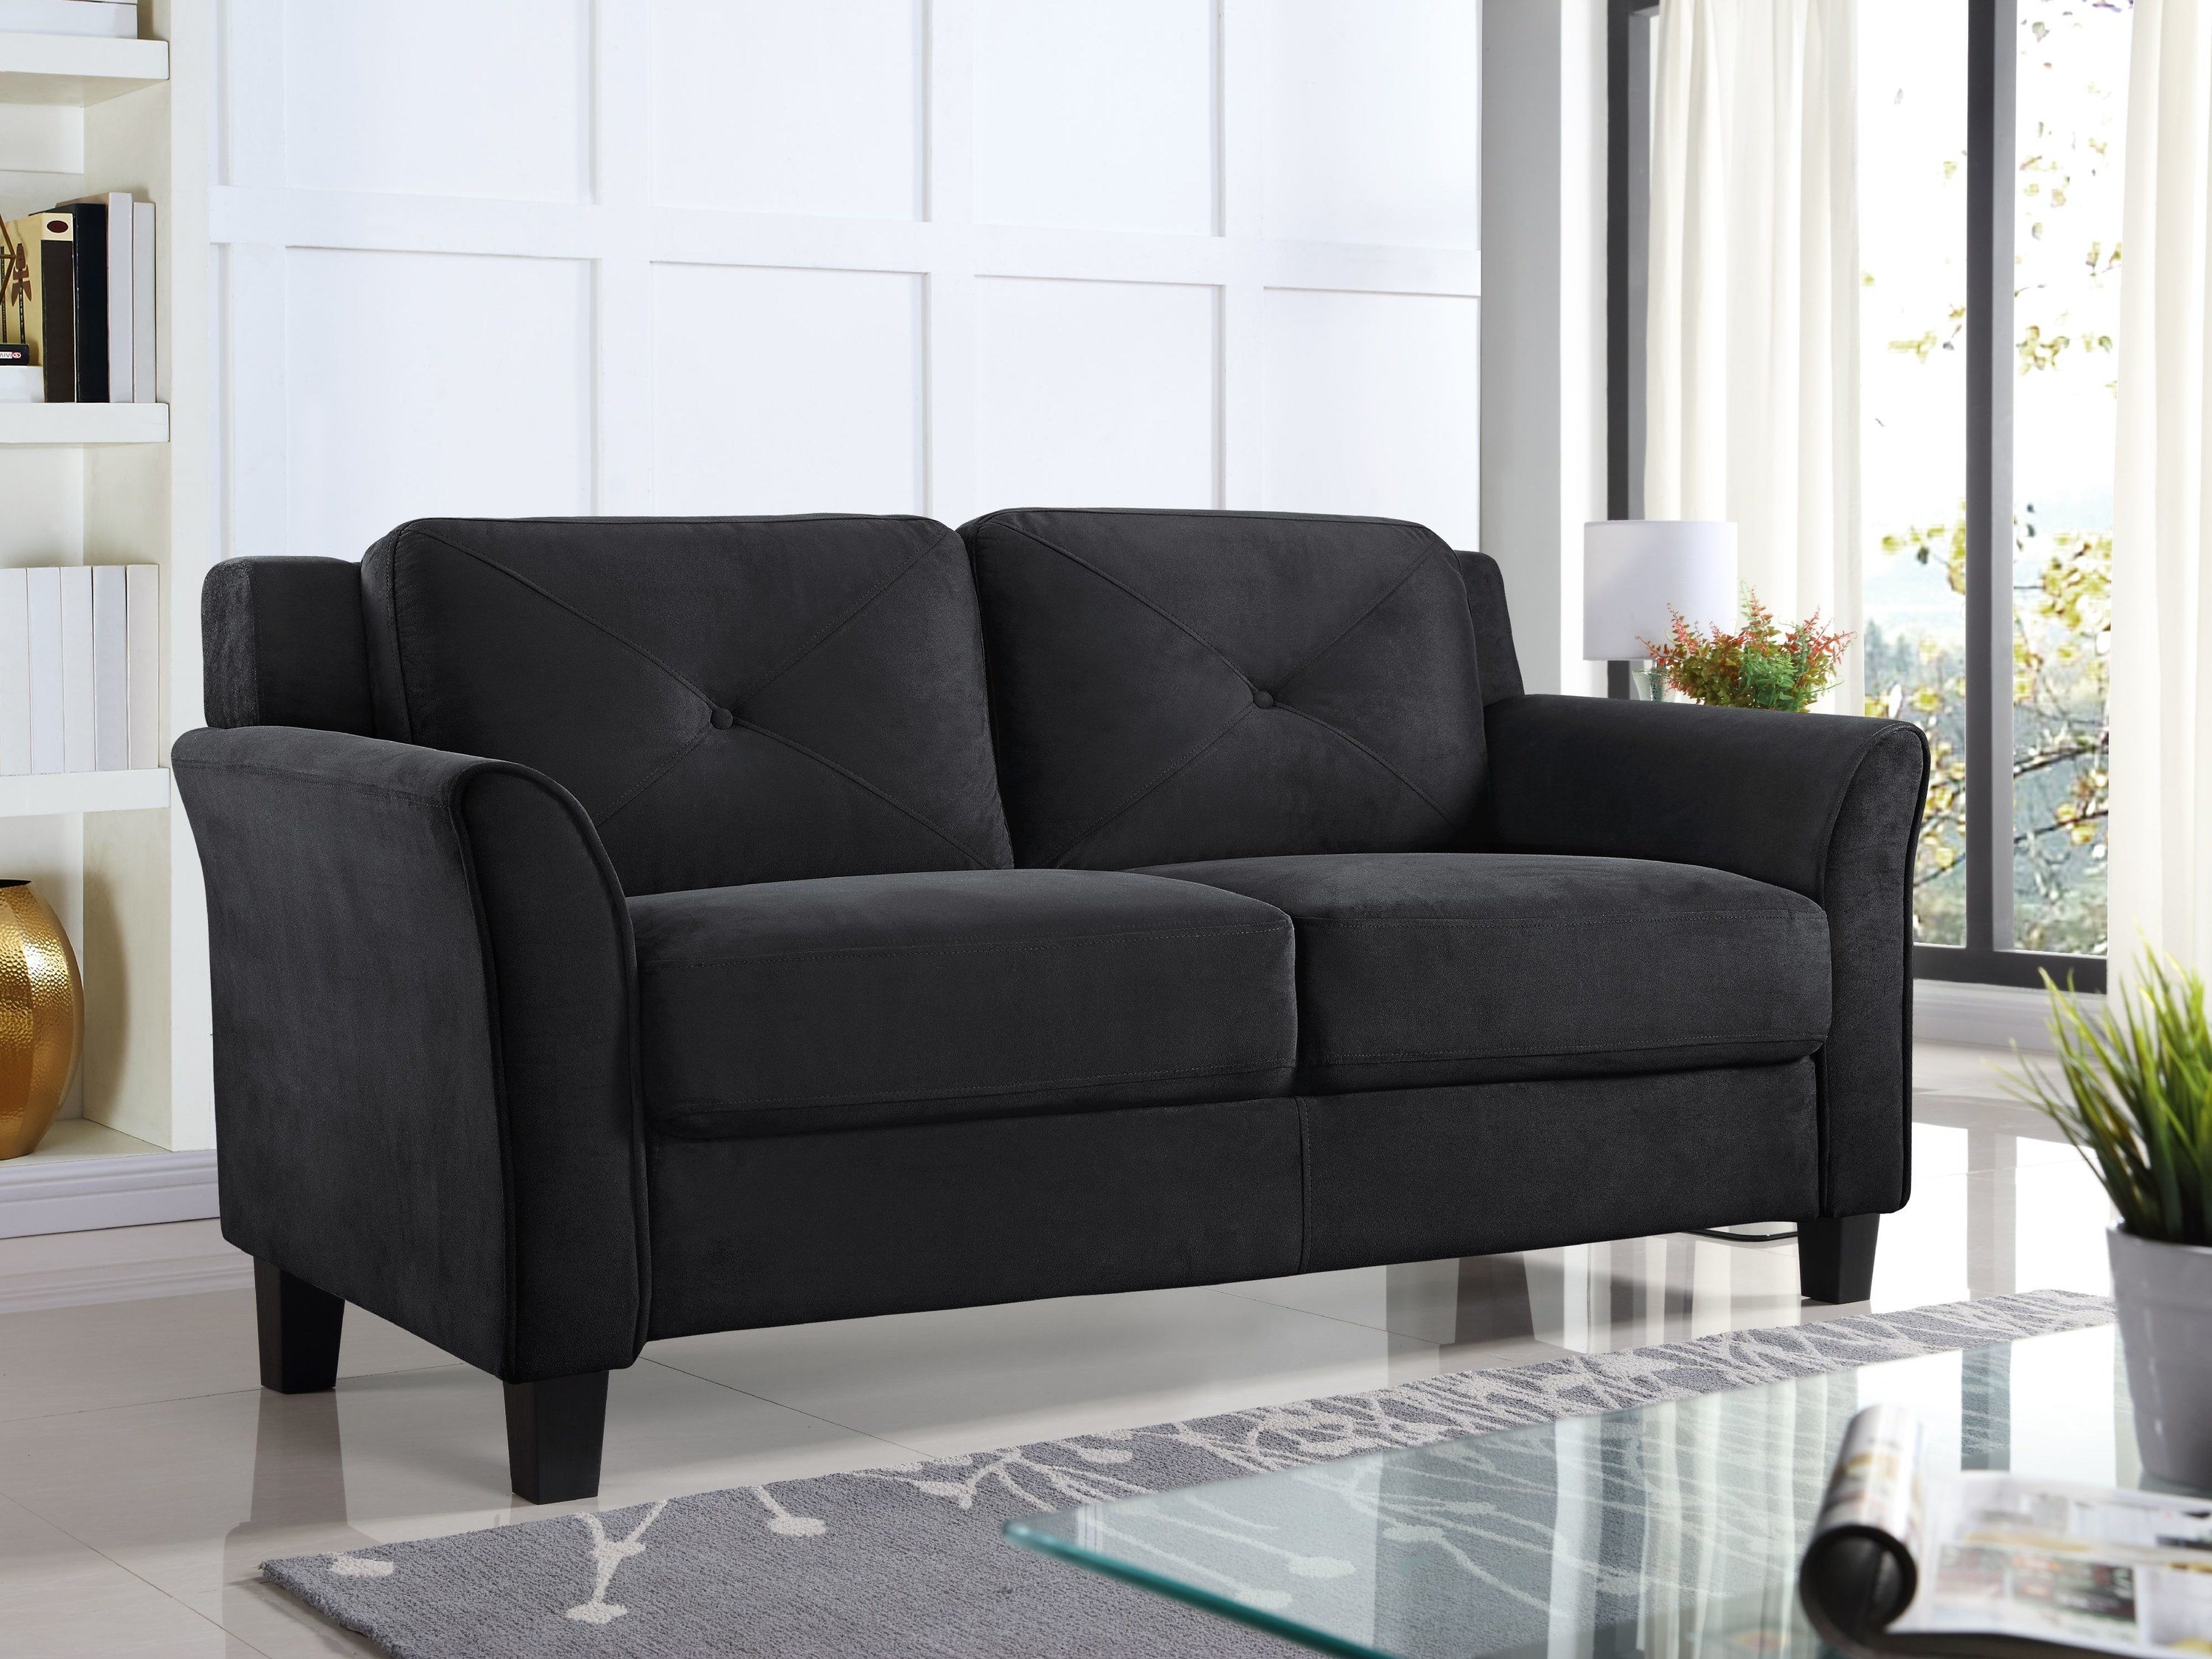 The couch in grey, with two back cushions and two bottom cushions